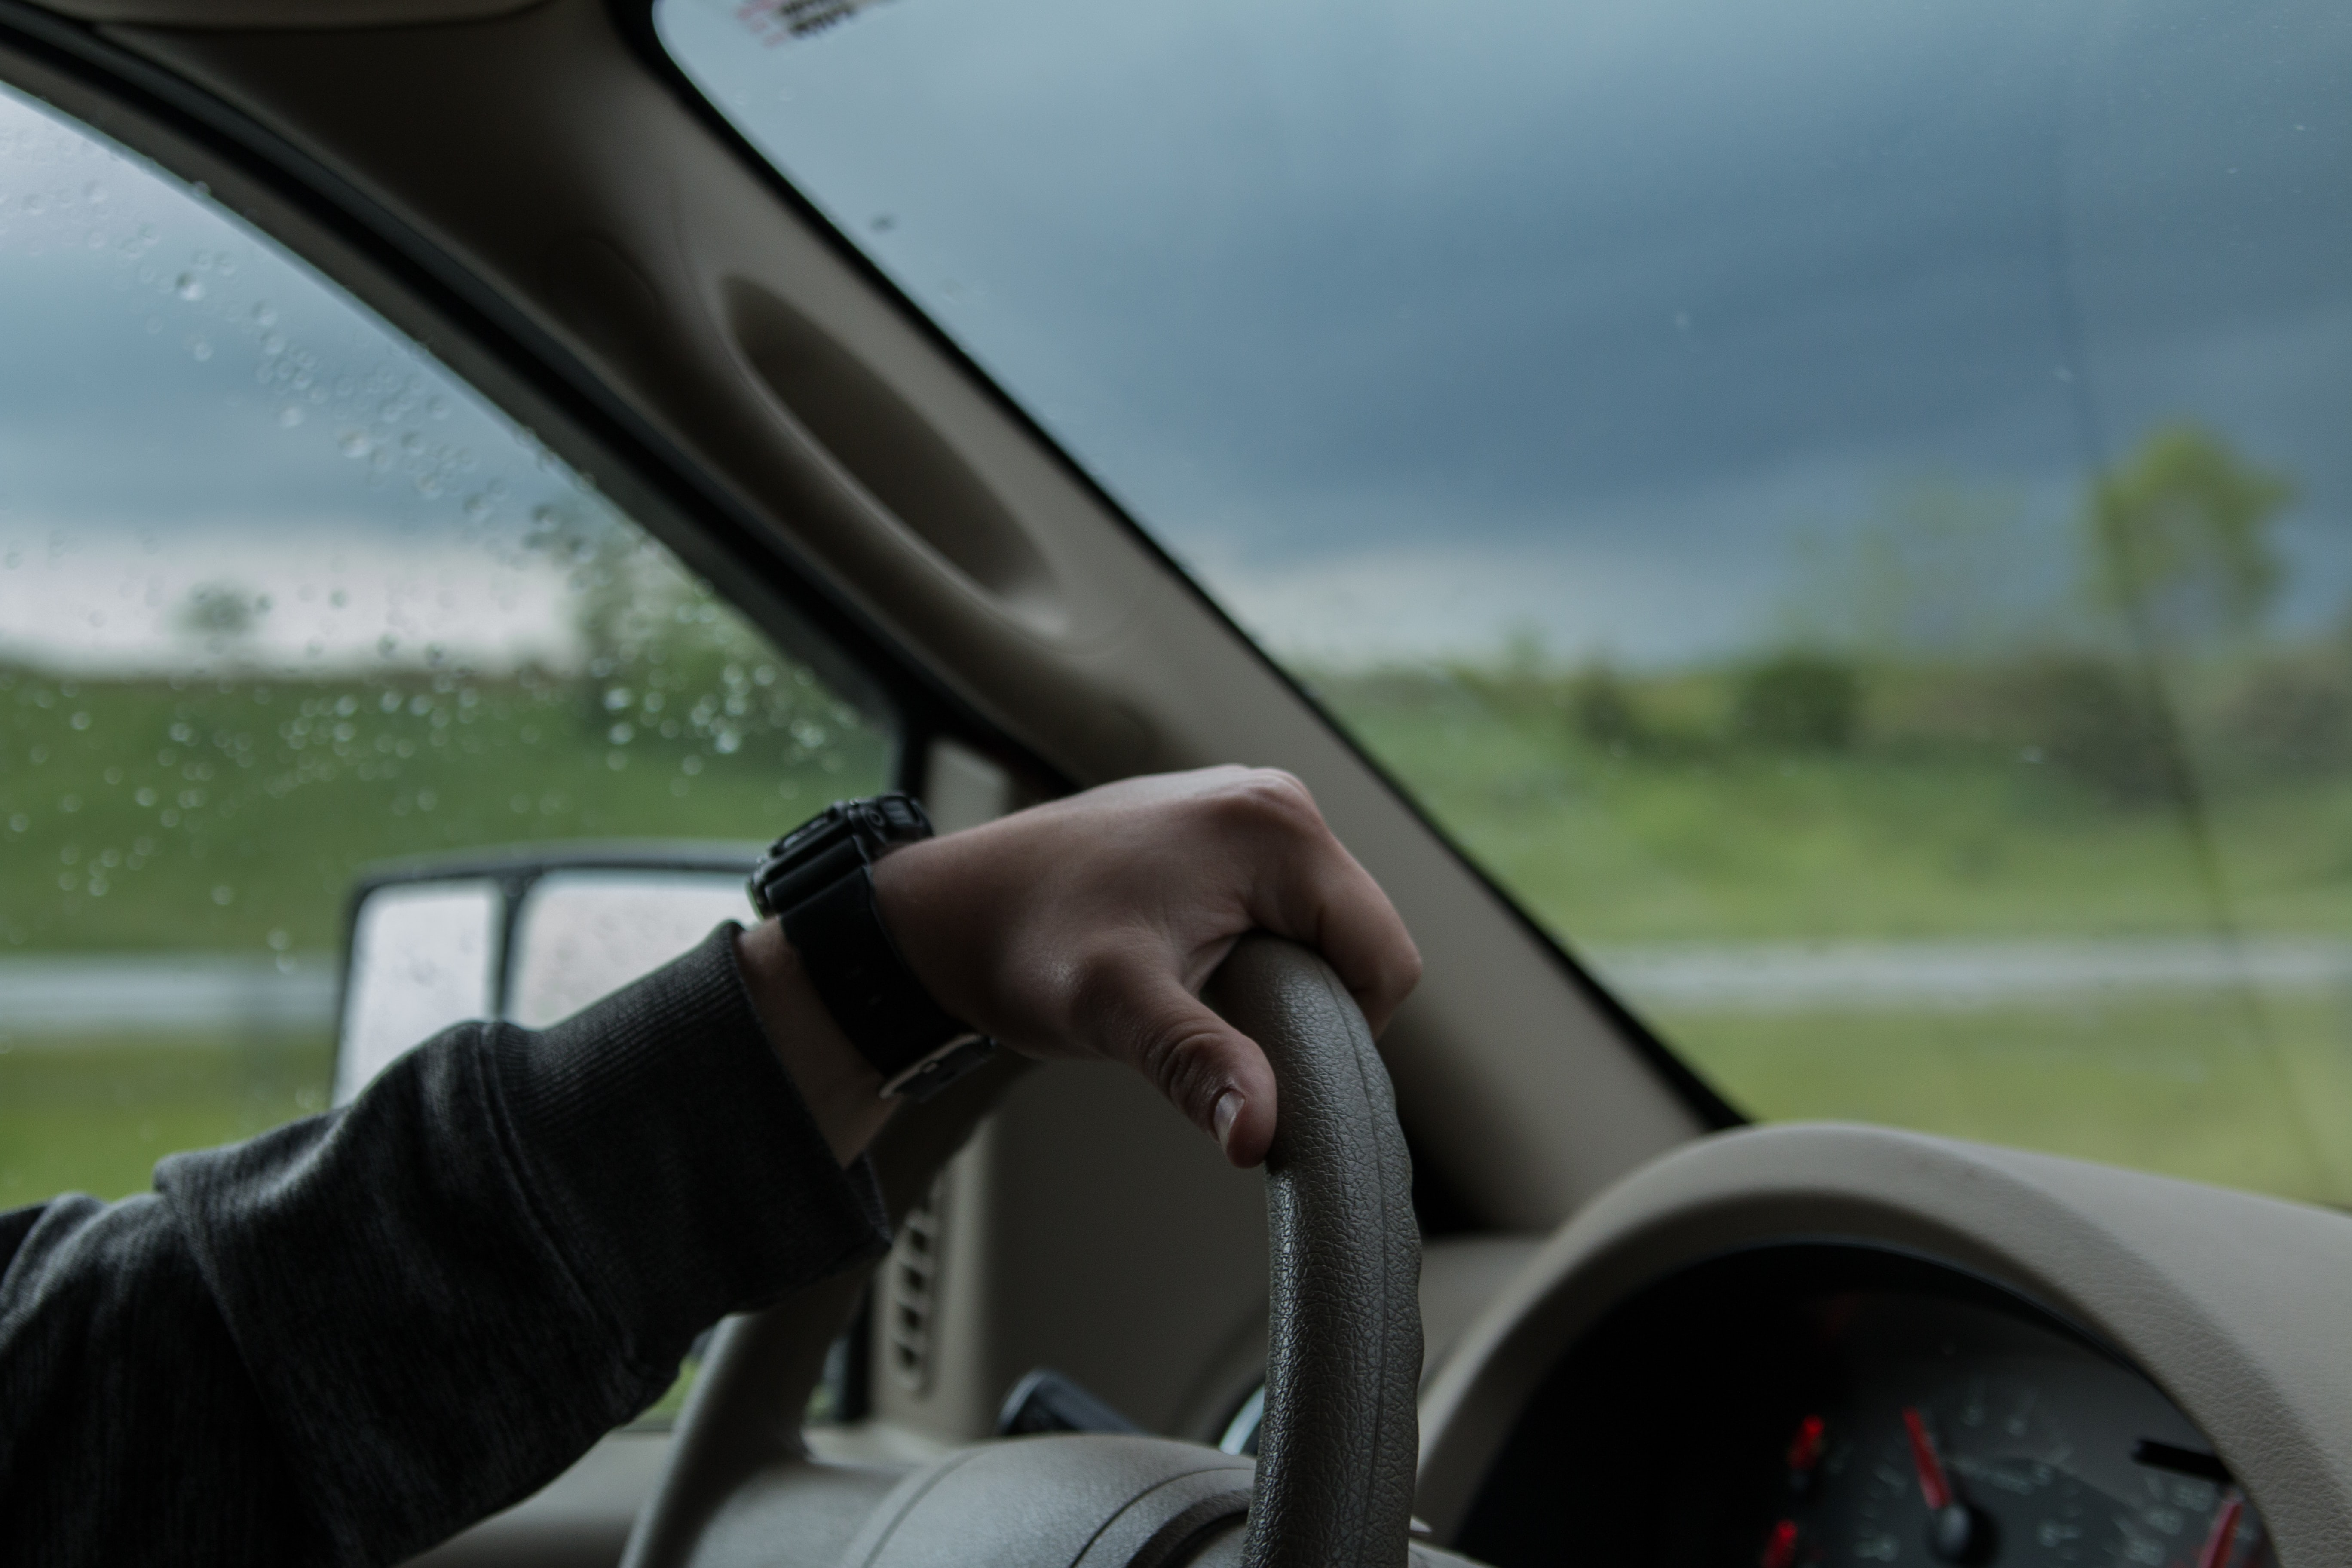 A close-up of the steering wheel with the driver's hand during a rainy day.